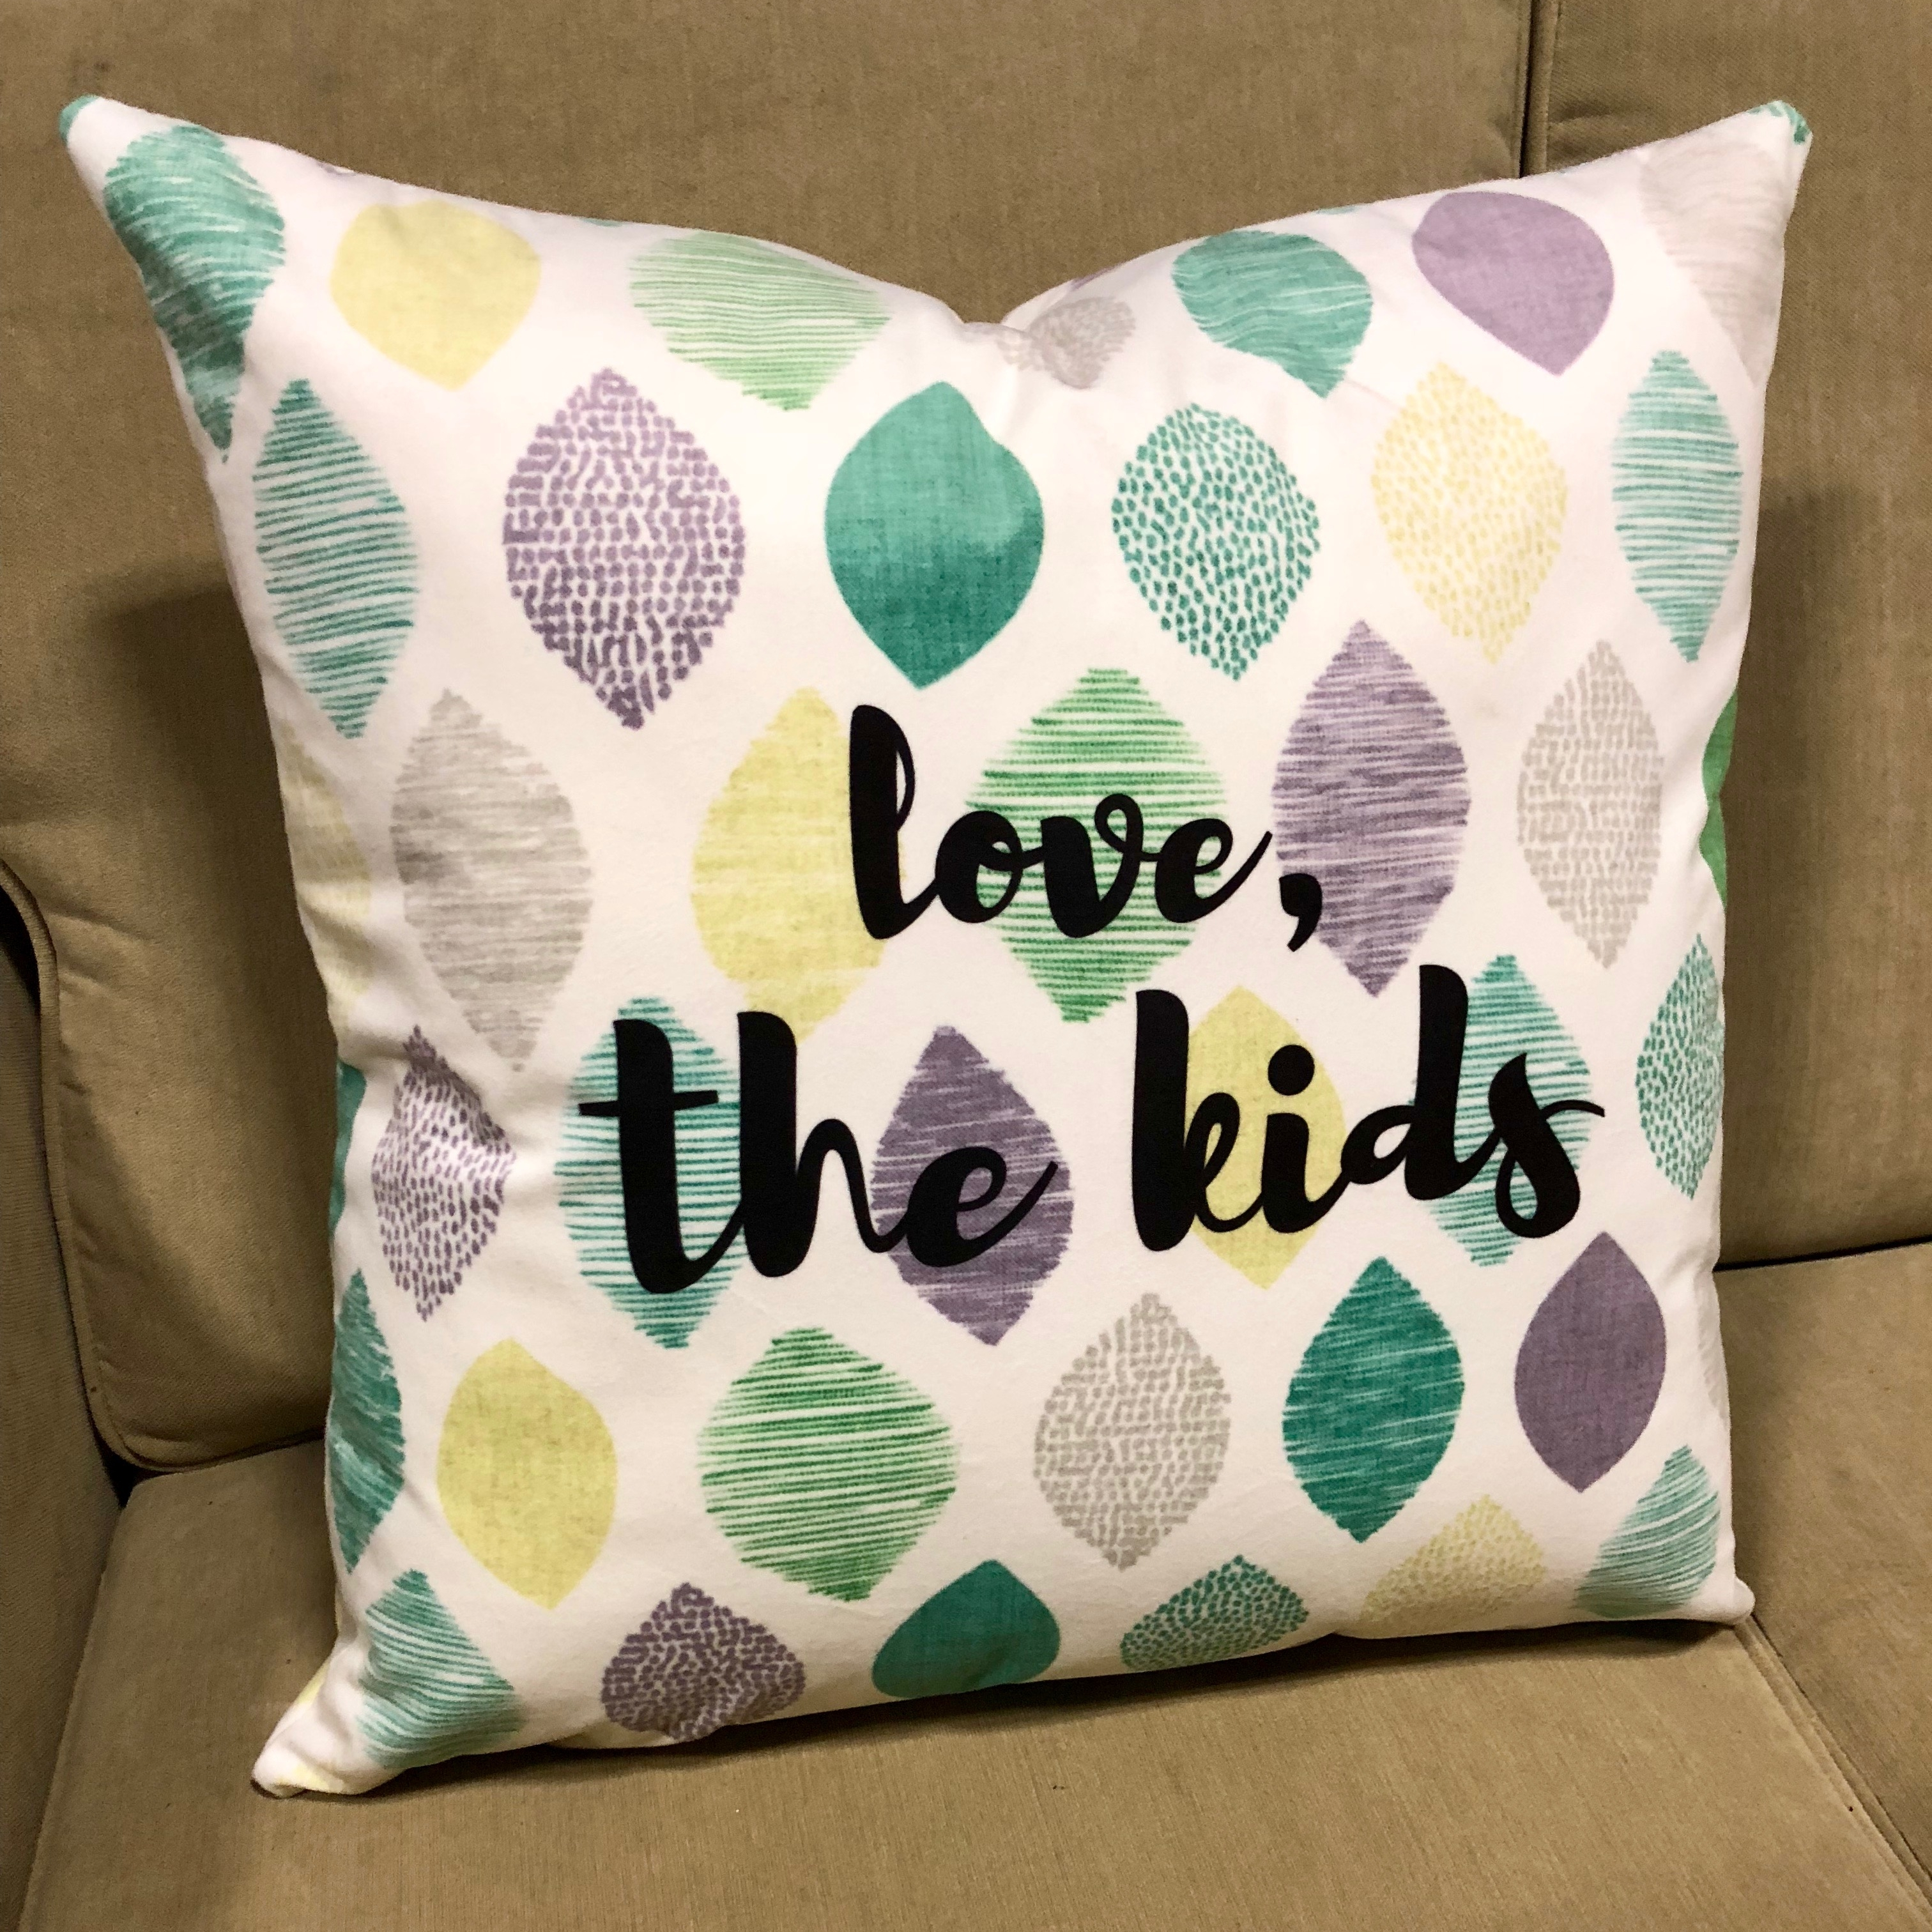 Personalized Printed Décor Pillow